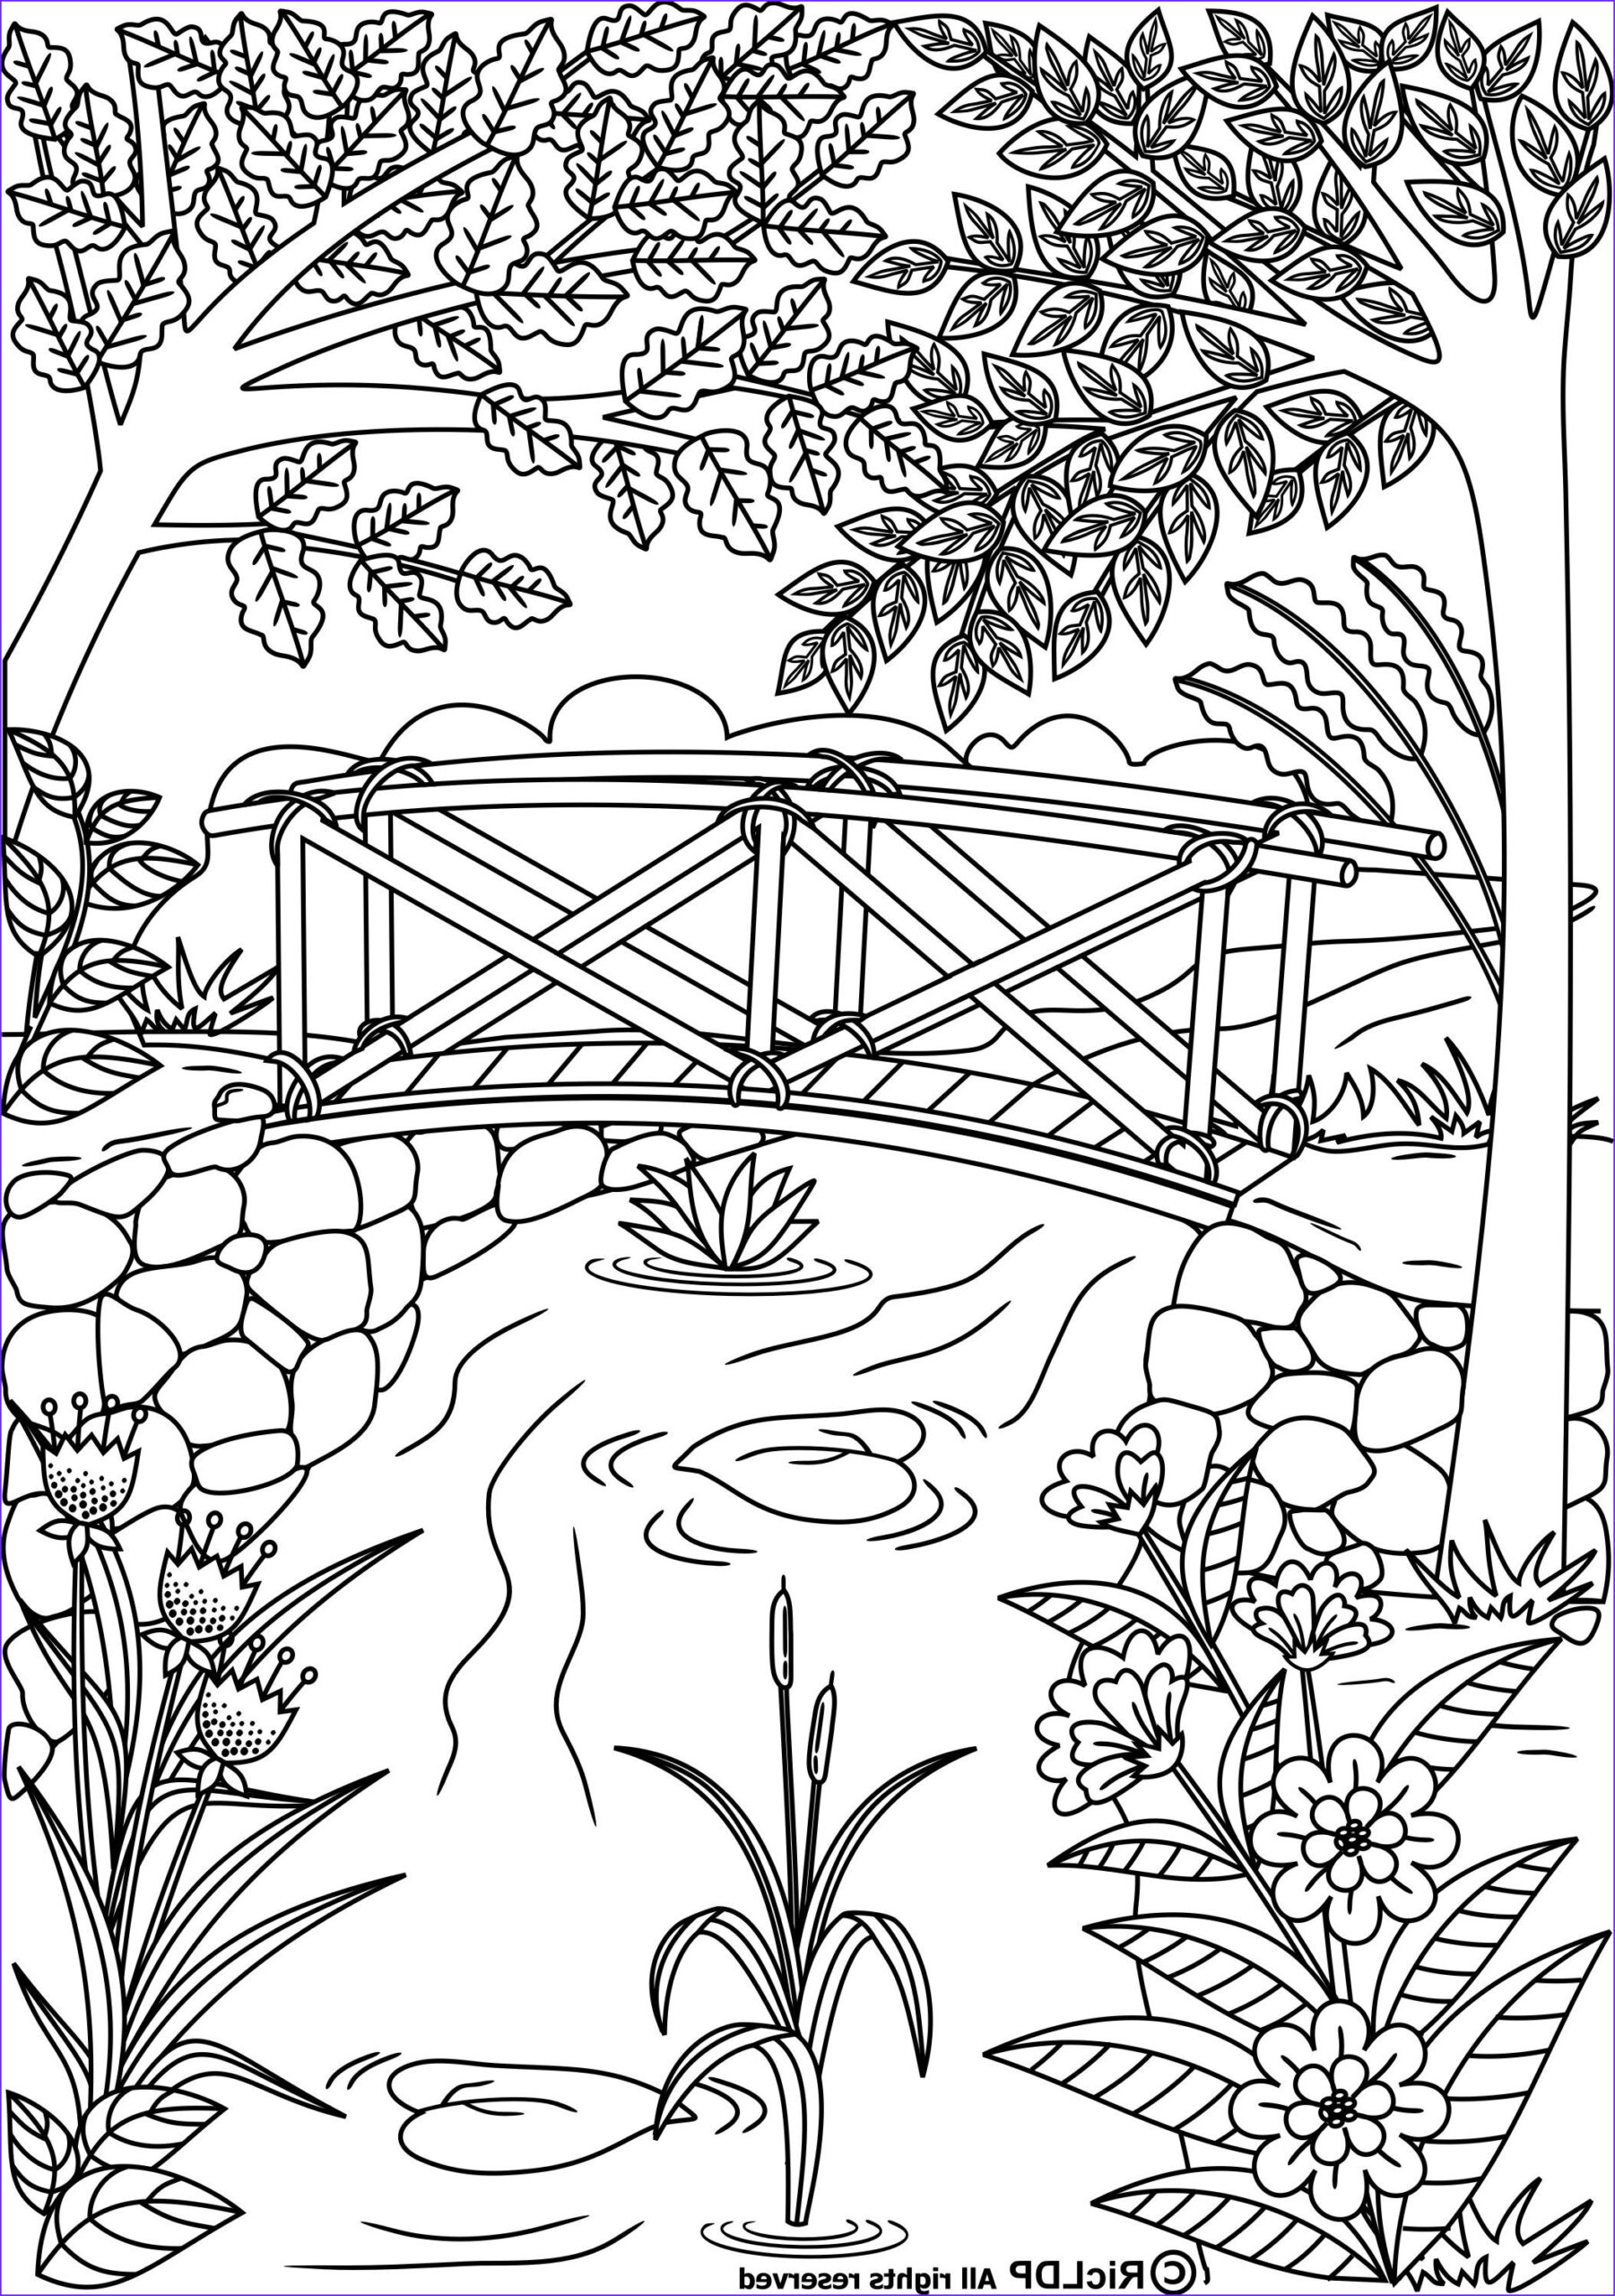 Coloring Pages for Grown Ups Cool Gallery Twenty Coloring Pages for Grown Ups